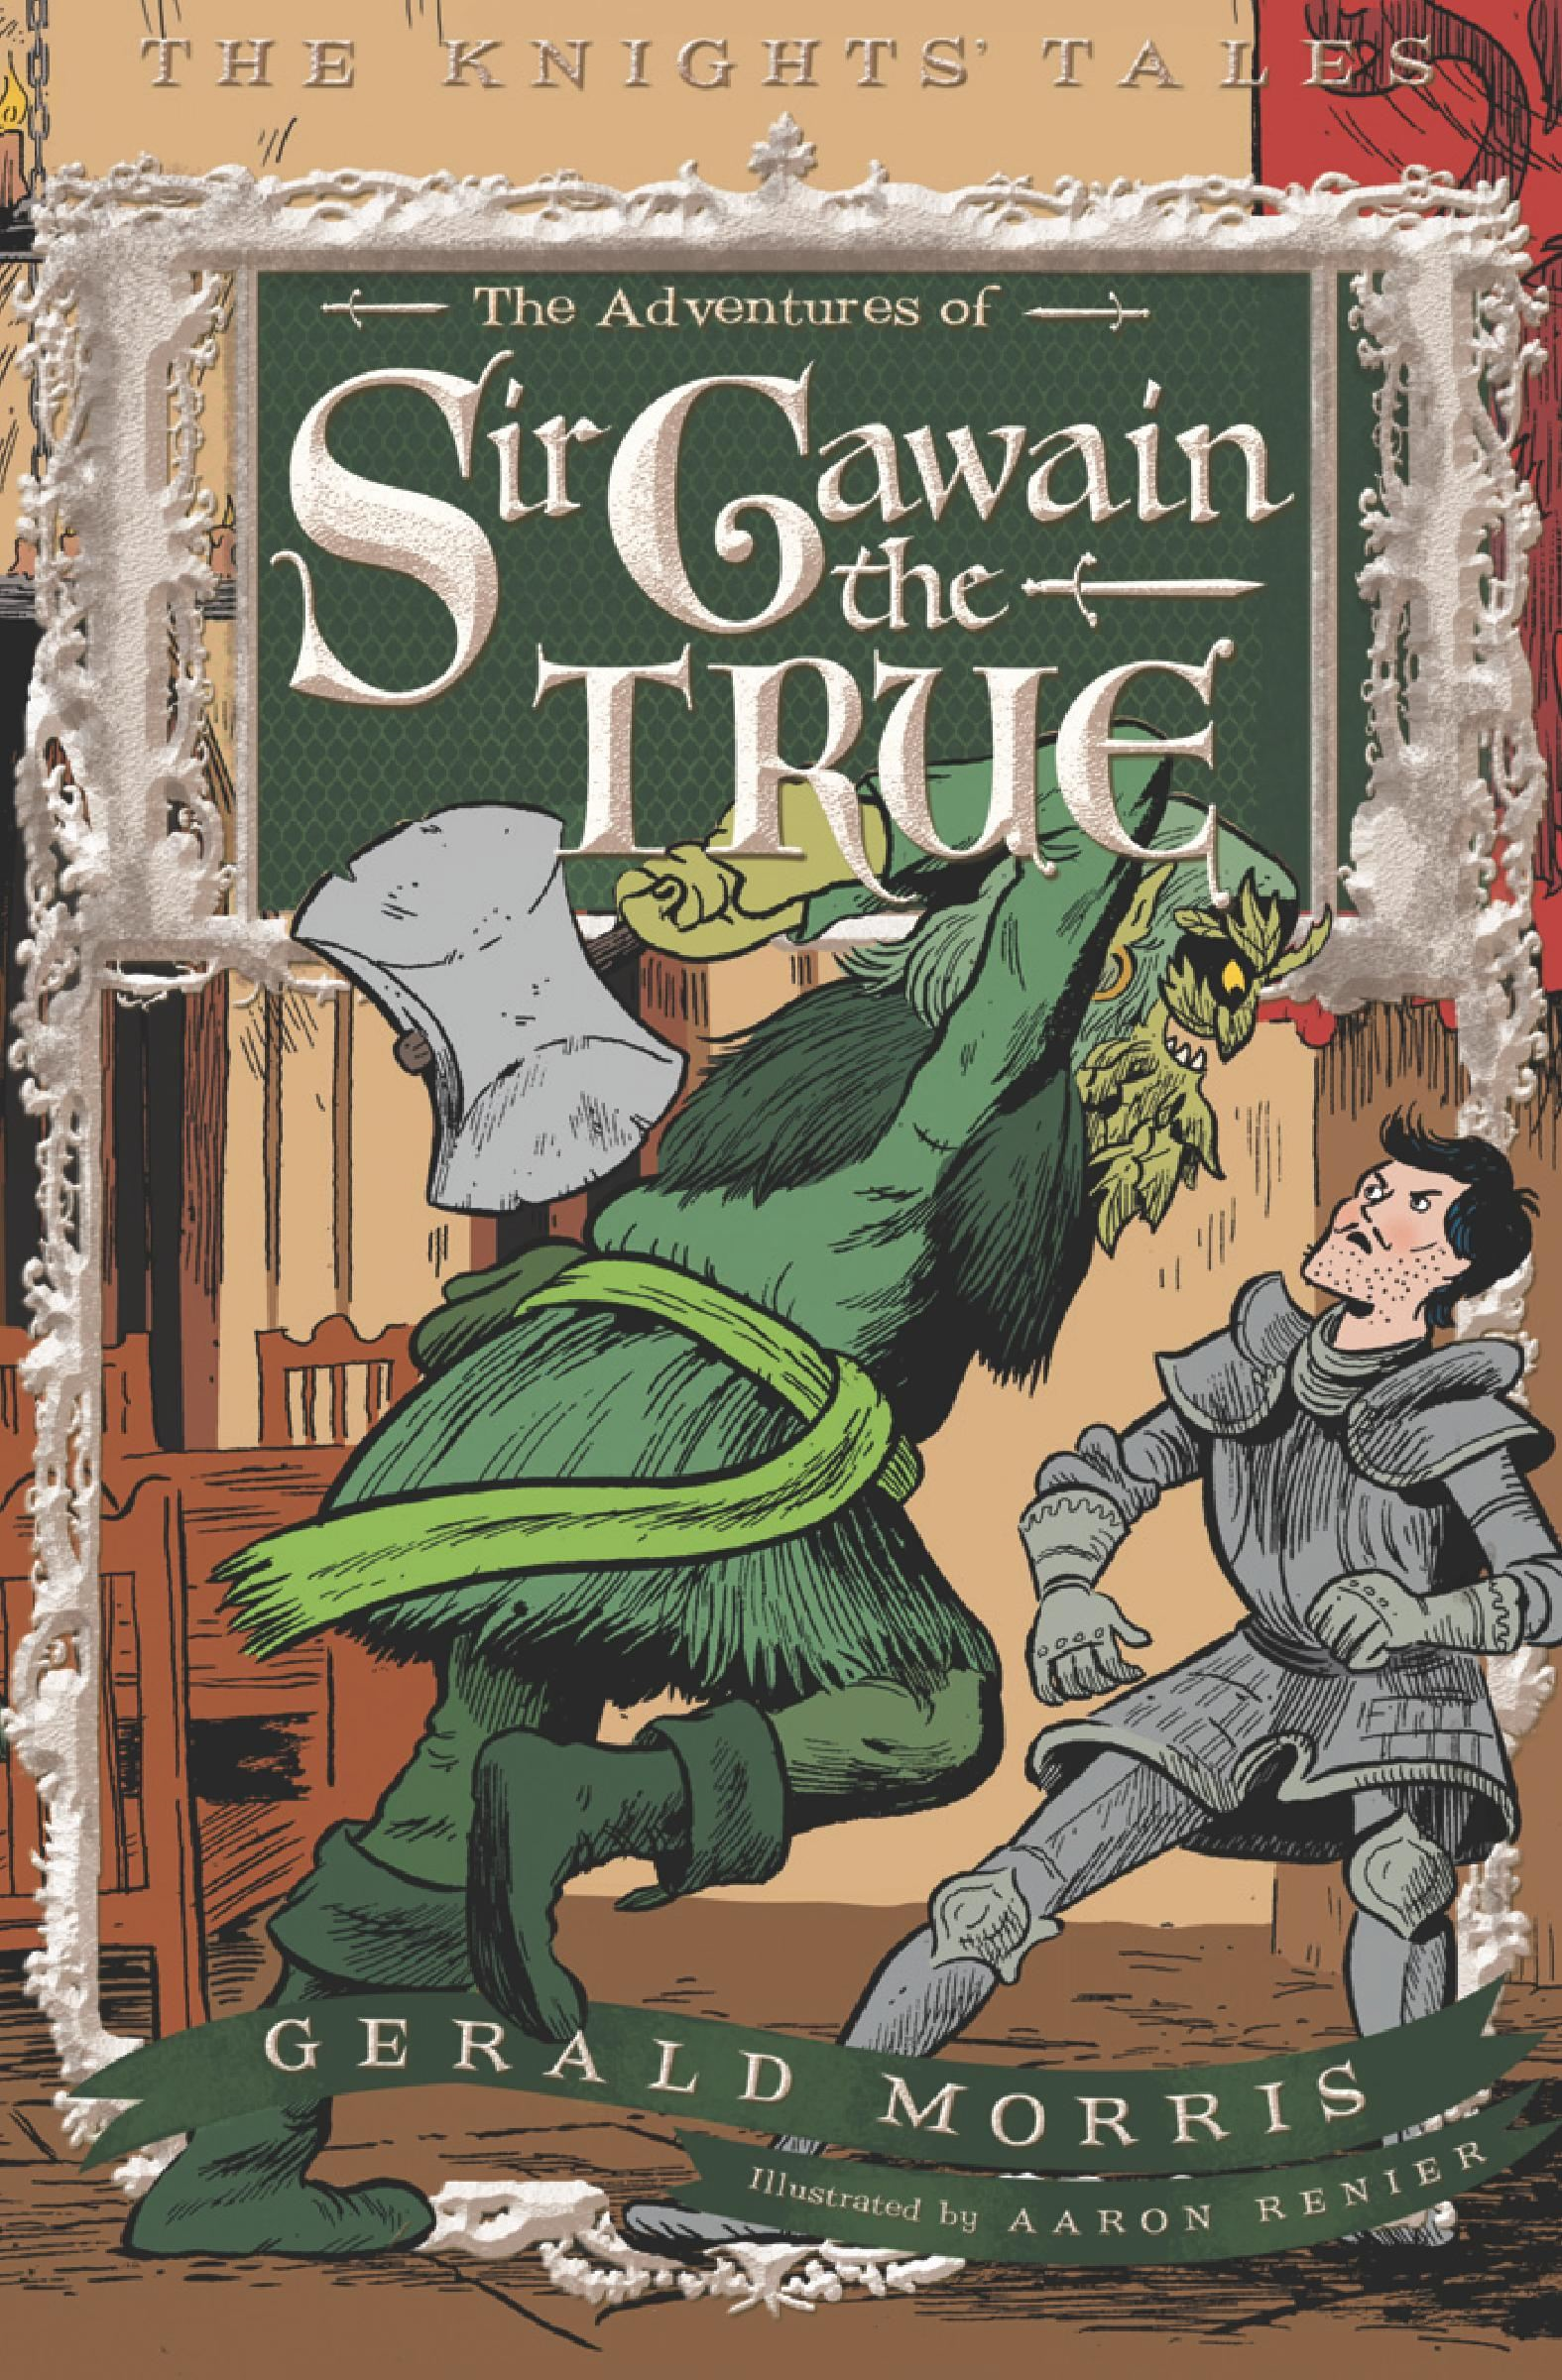 The Adventures of Sir Gawain the True By: Gerald Morris,Aaron Renier